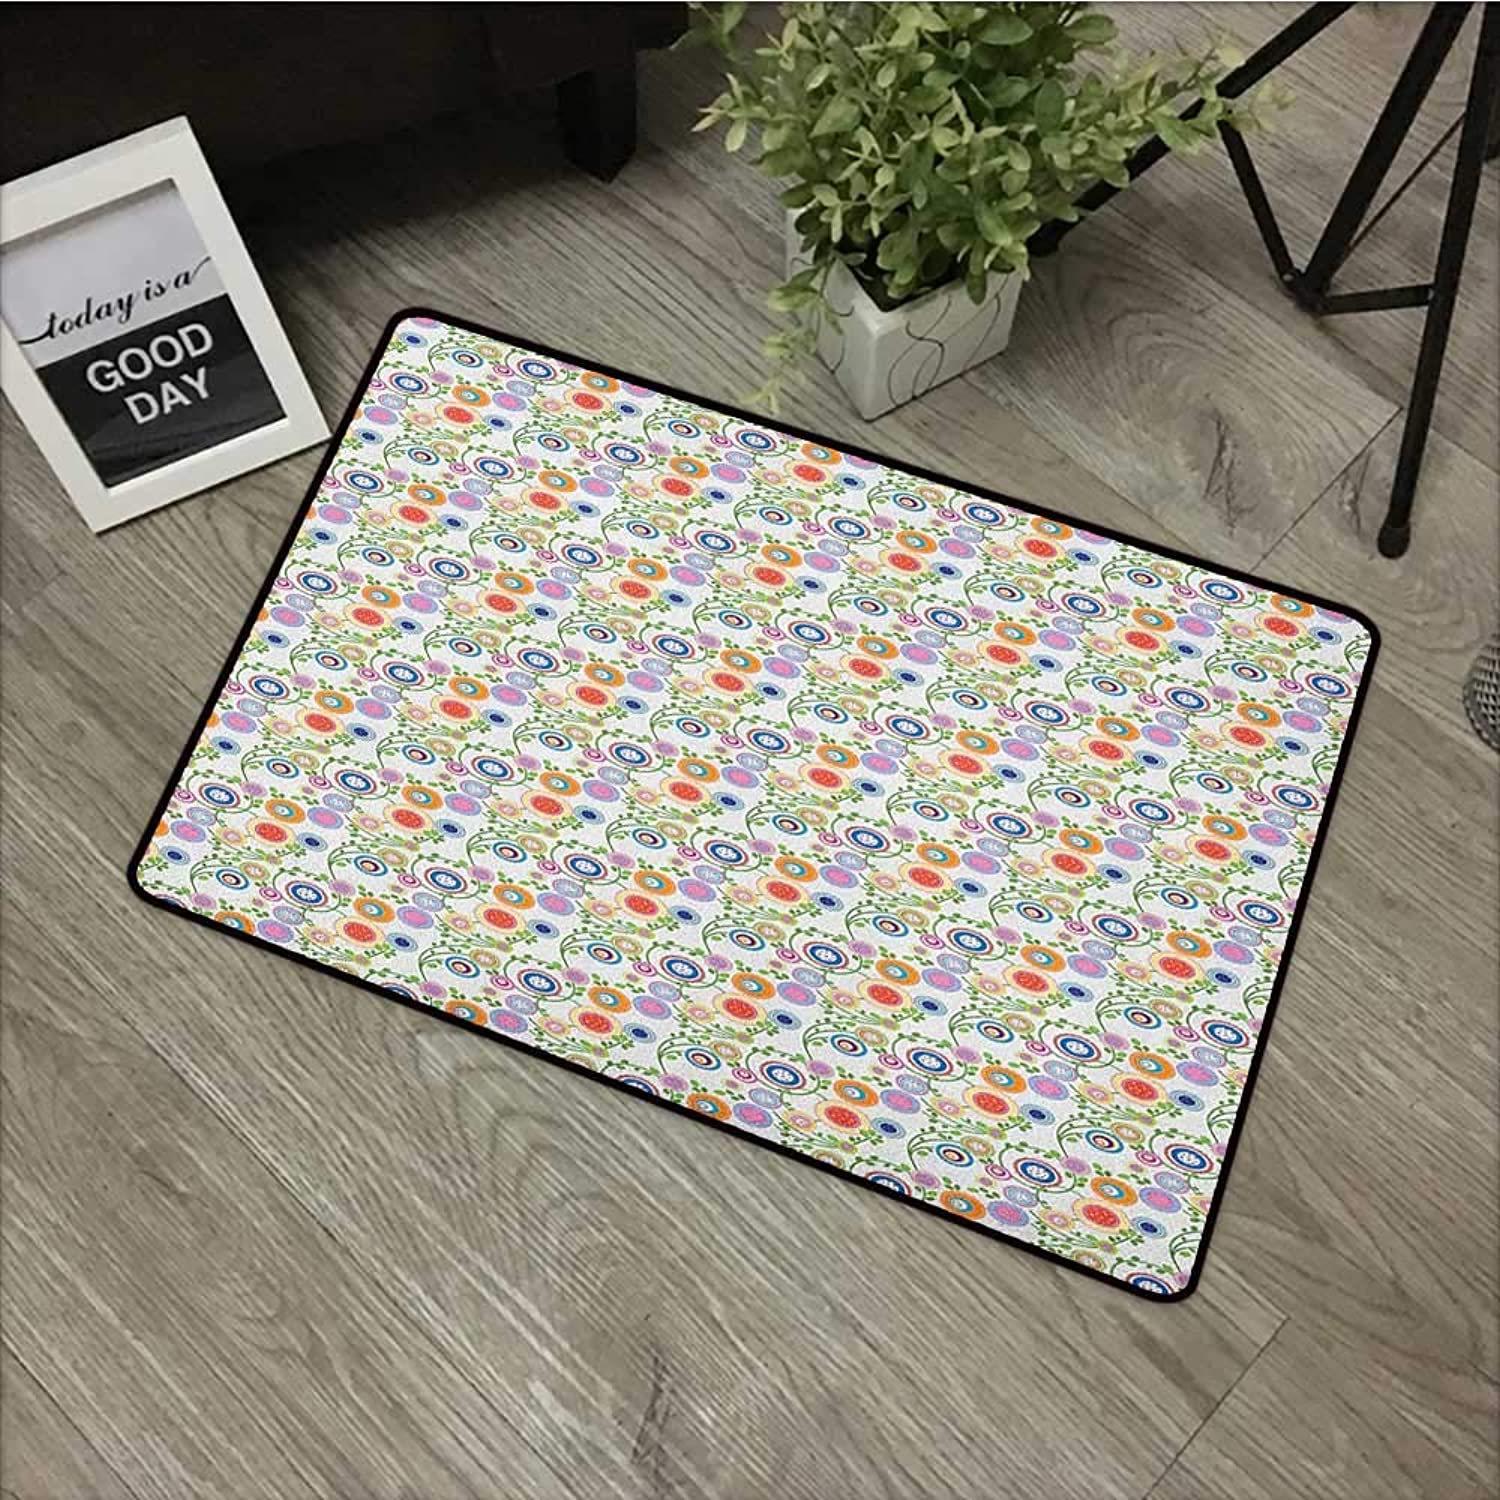 Pool Anti-Slip Door mat W35 x L59 INCH Floral,Spring Theme with Circular Flower Petals Blossom Flora Curved Branches Growth Print, Multicolor Non-Slip, with Non-Slip Backing,Non-Slip Door Mat Carpet